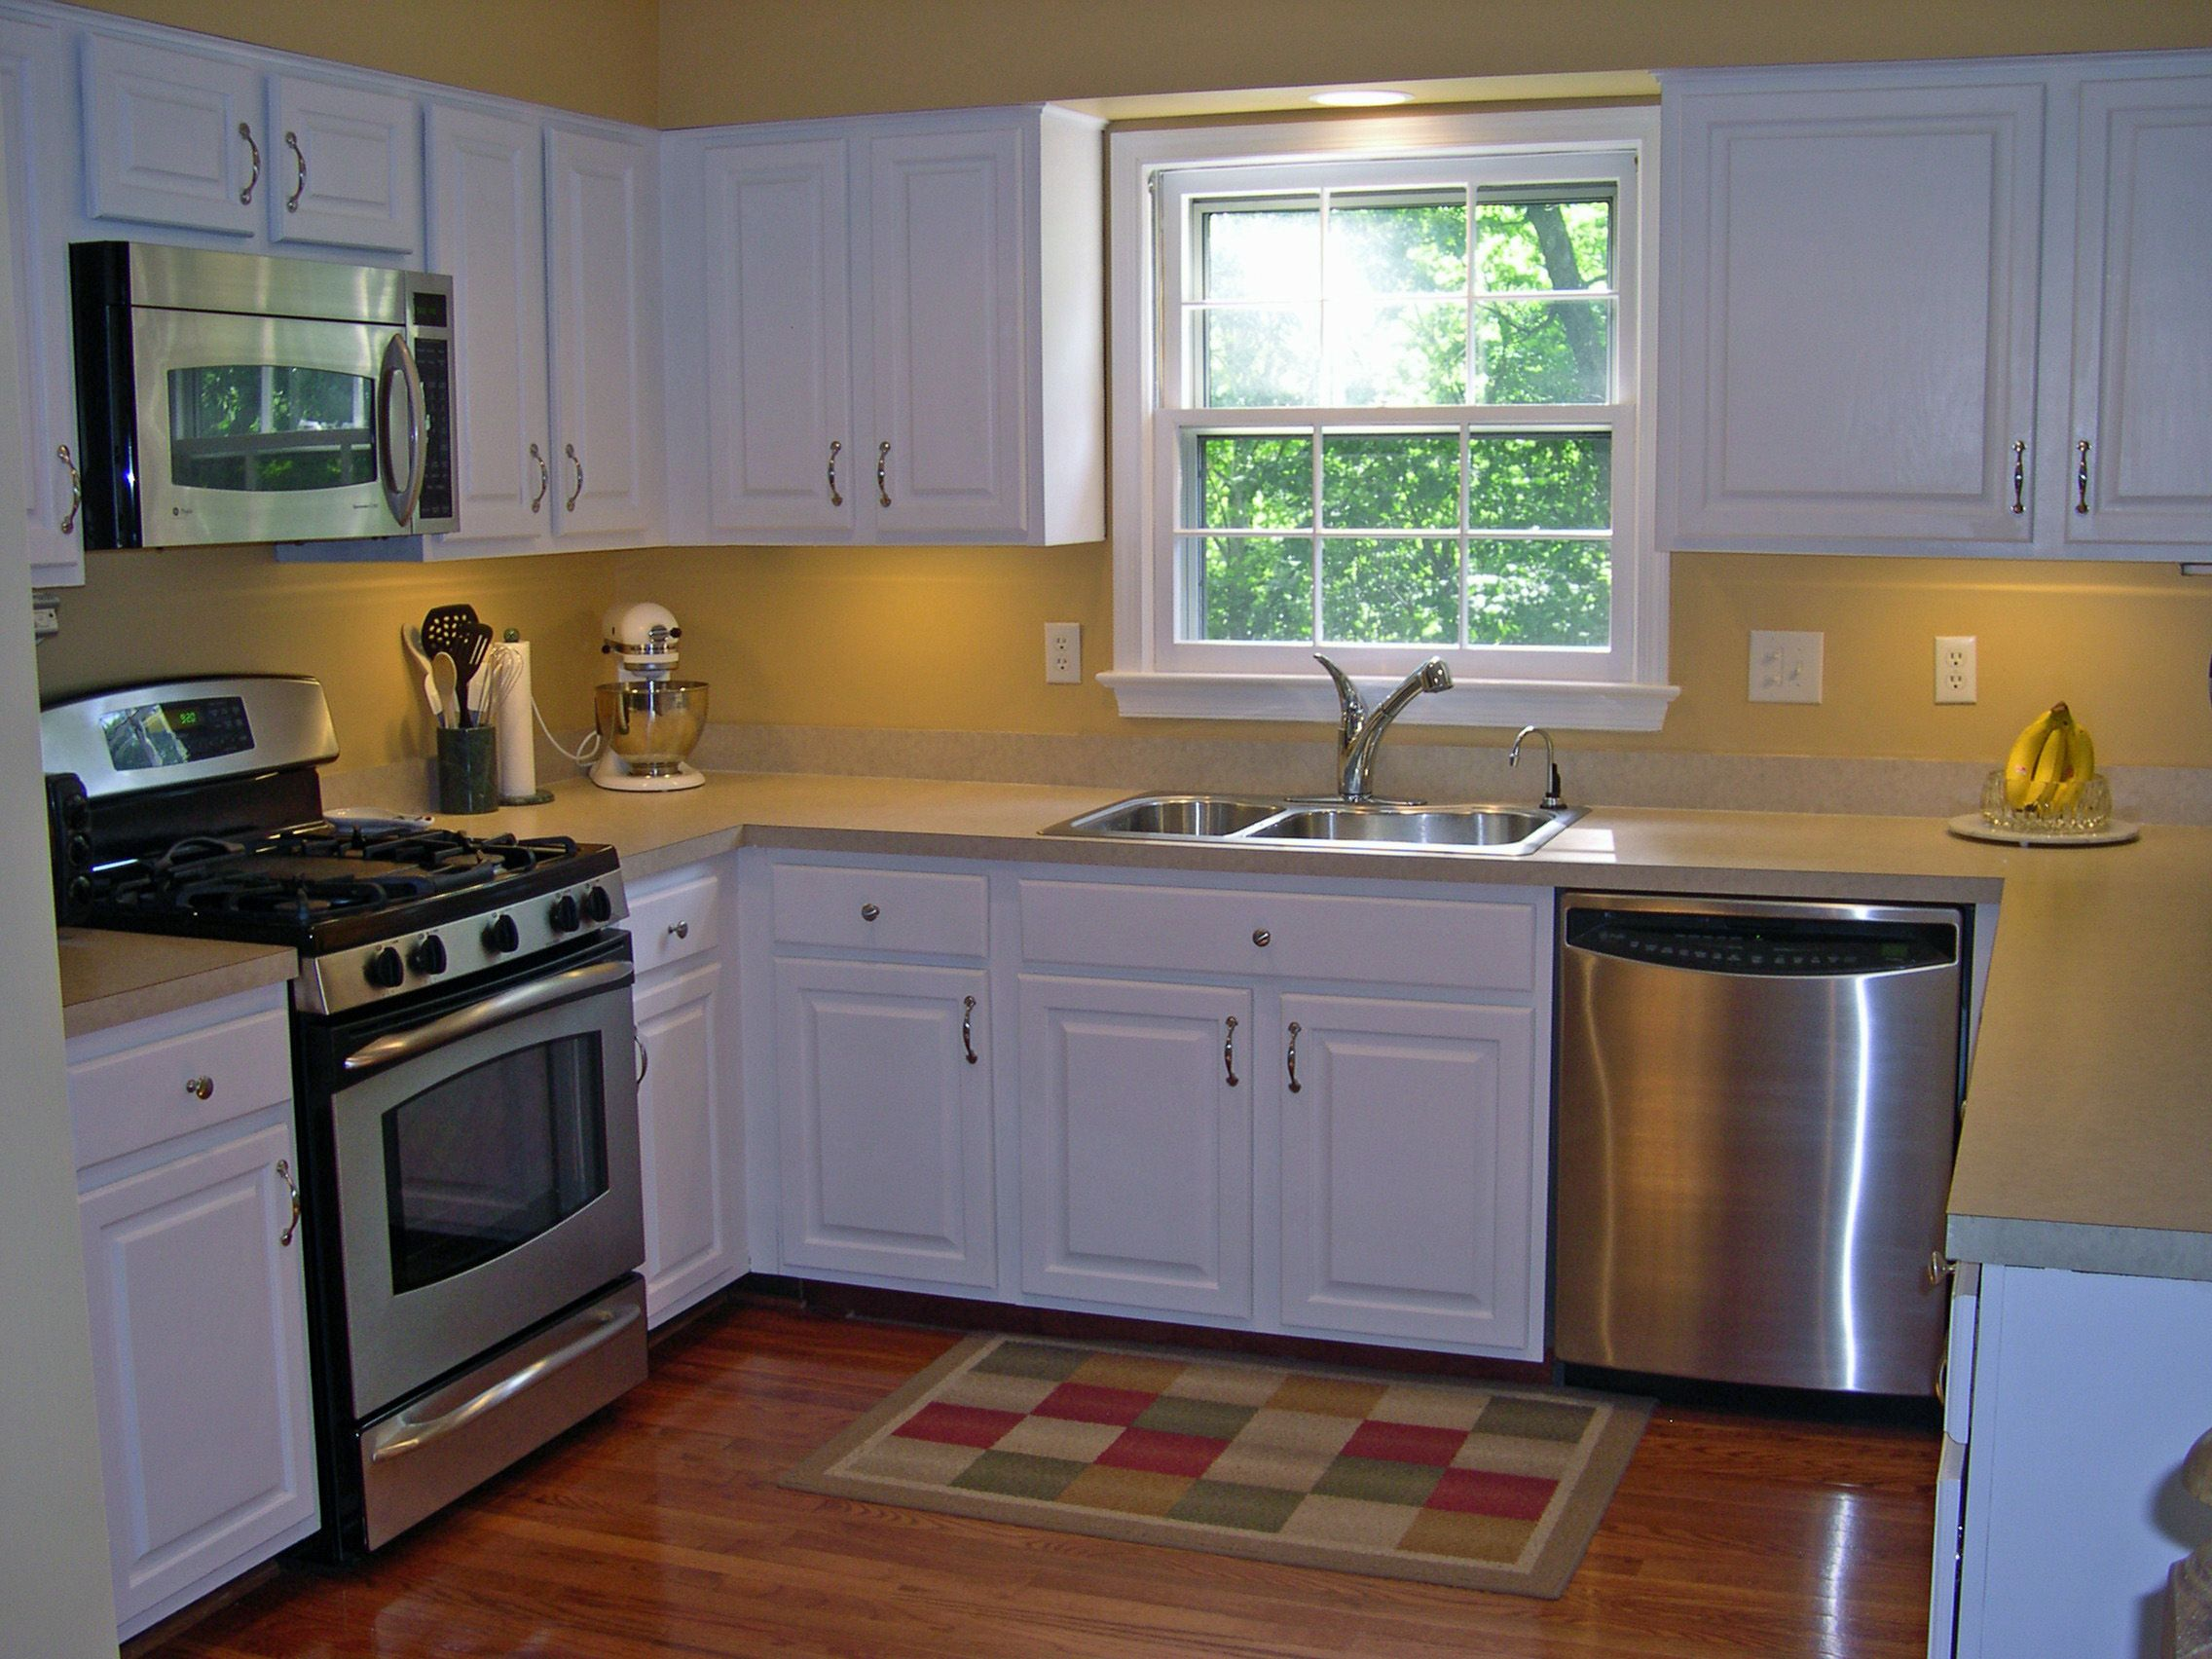 Kitchen Remodeling Budget Set Optimizing Your Small Spaced Heart Of House Doesn't Always Force .